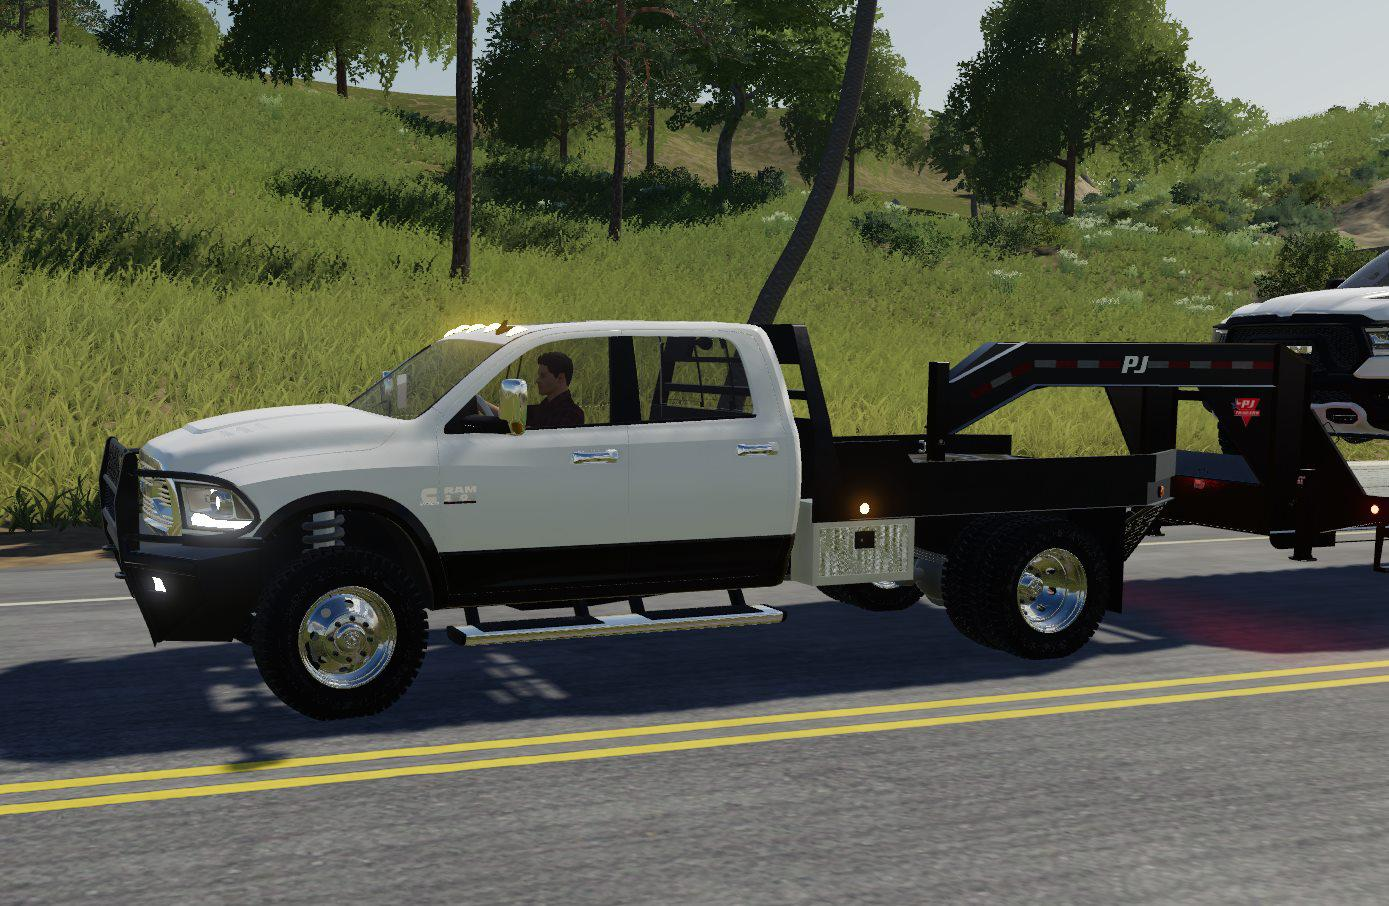 Dodge Ram 3500 Flatbed V1 0 0 0 Truck Farming Simulator 19 Mod Ls19 Mod Download